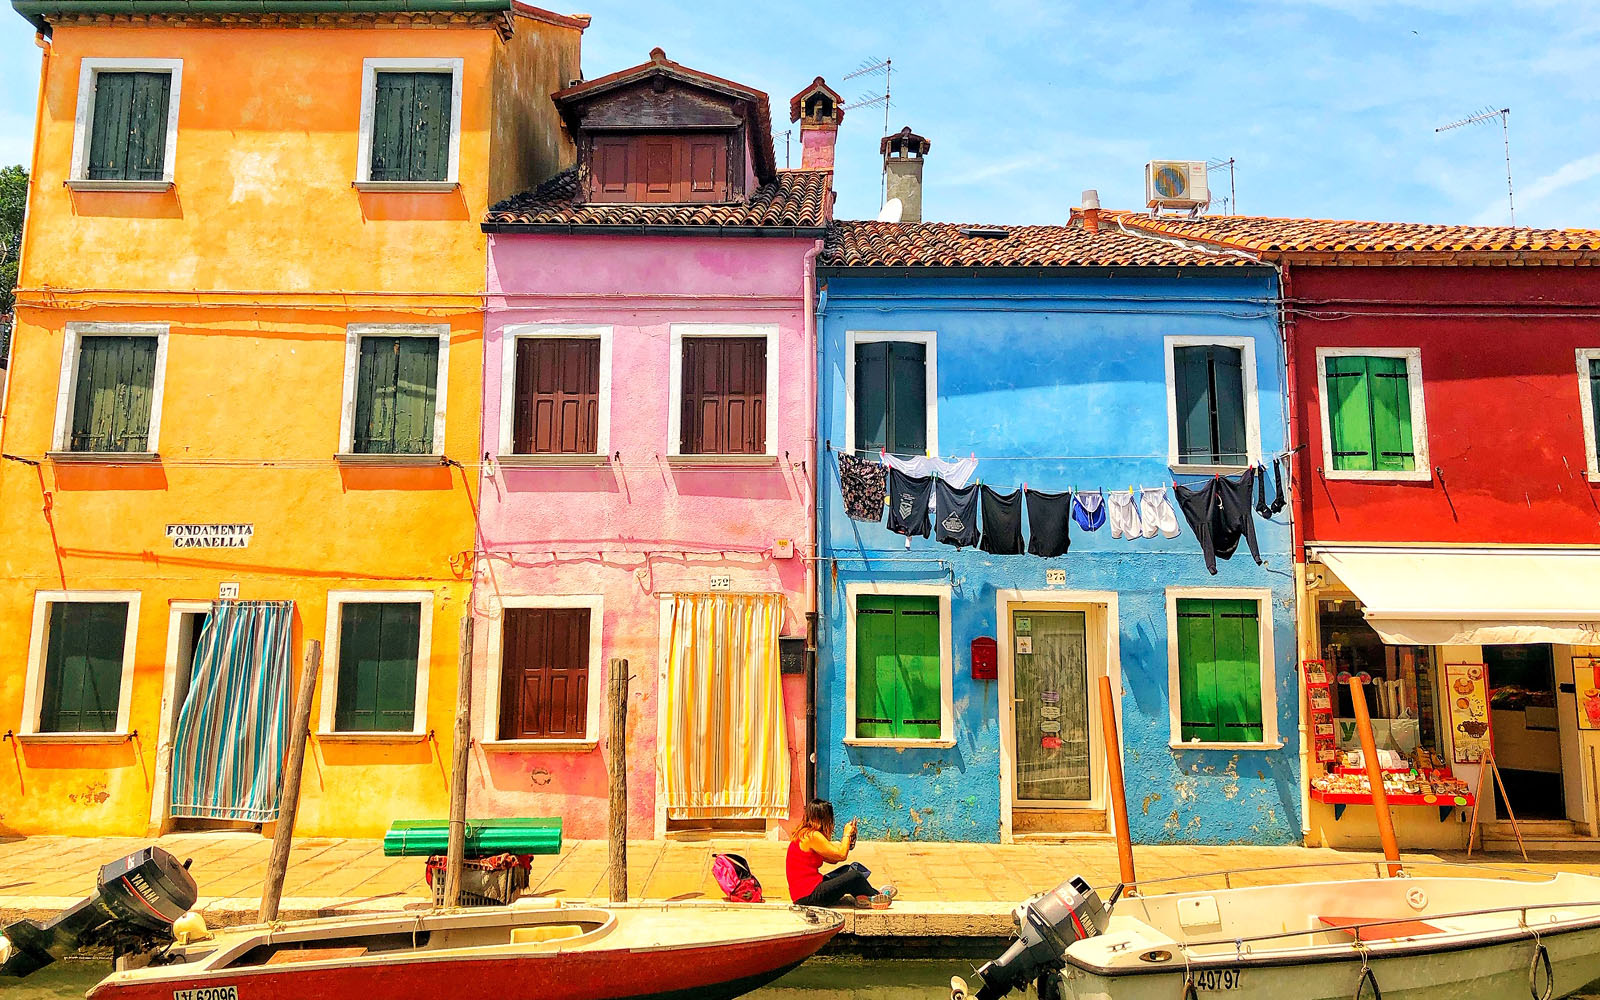 Case colorate a Burano.